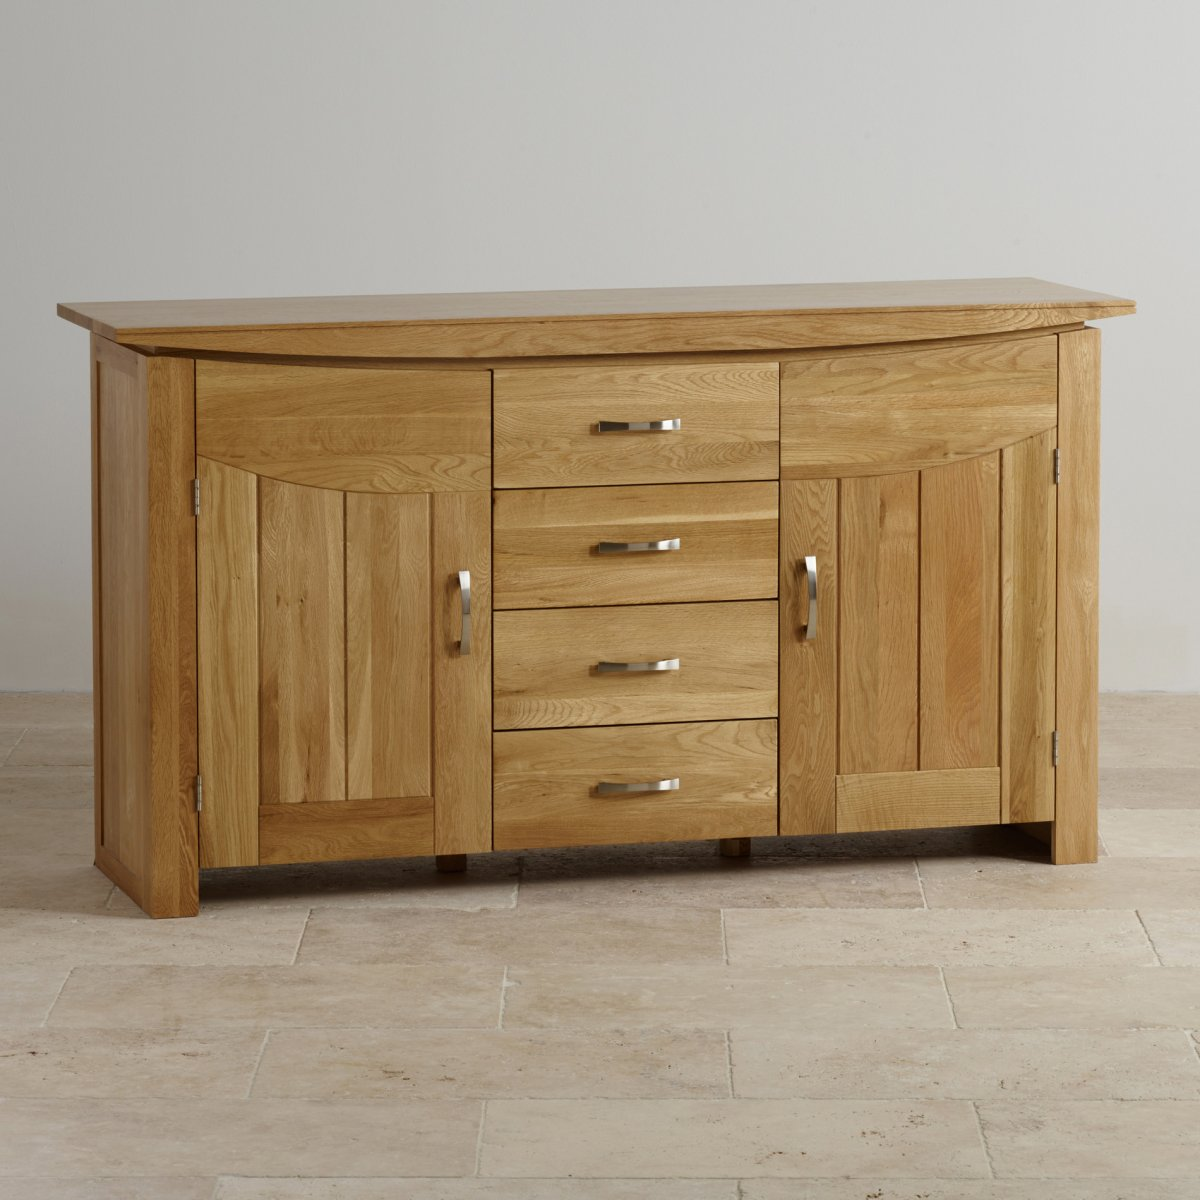 Dining Room Credenza Buffet Tokyo Large Sideboard In Natural Solid Oak Oak Furniture